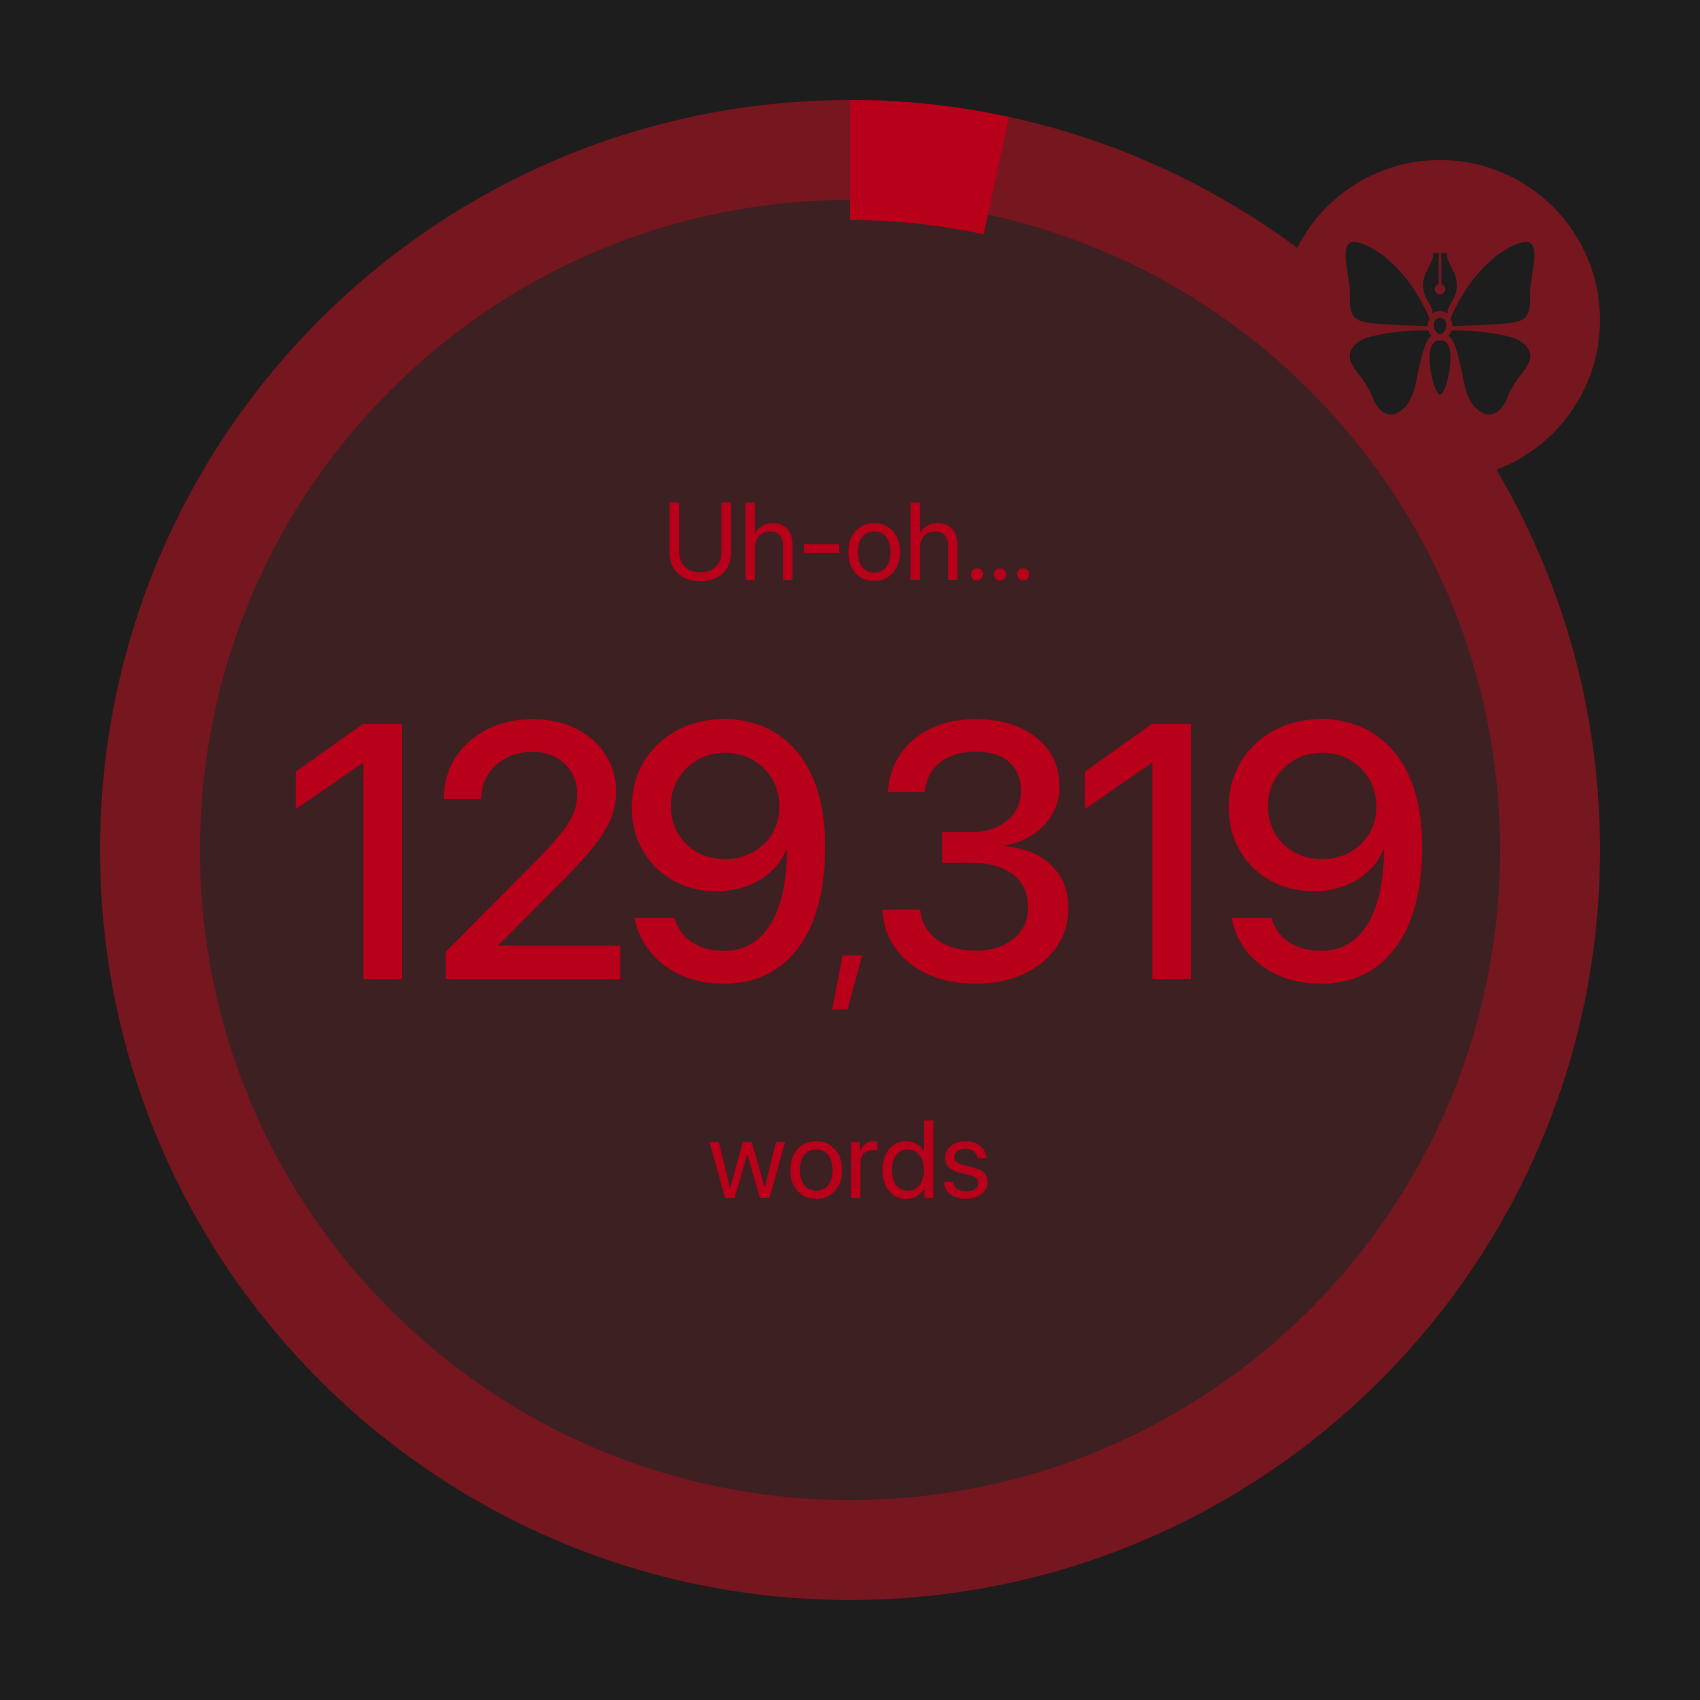 129,319 of 125,000 words